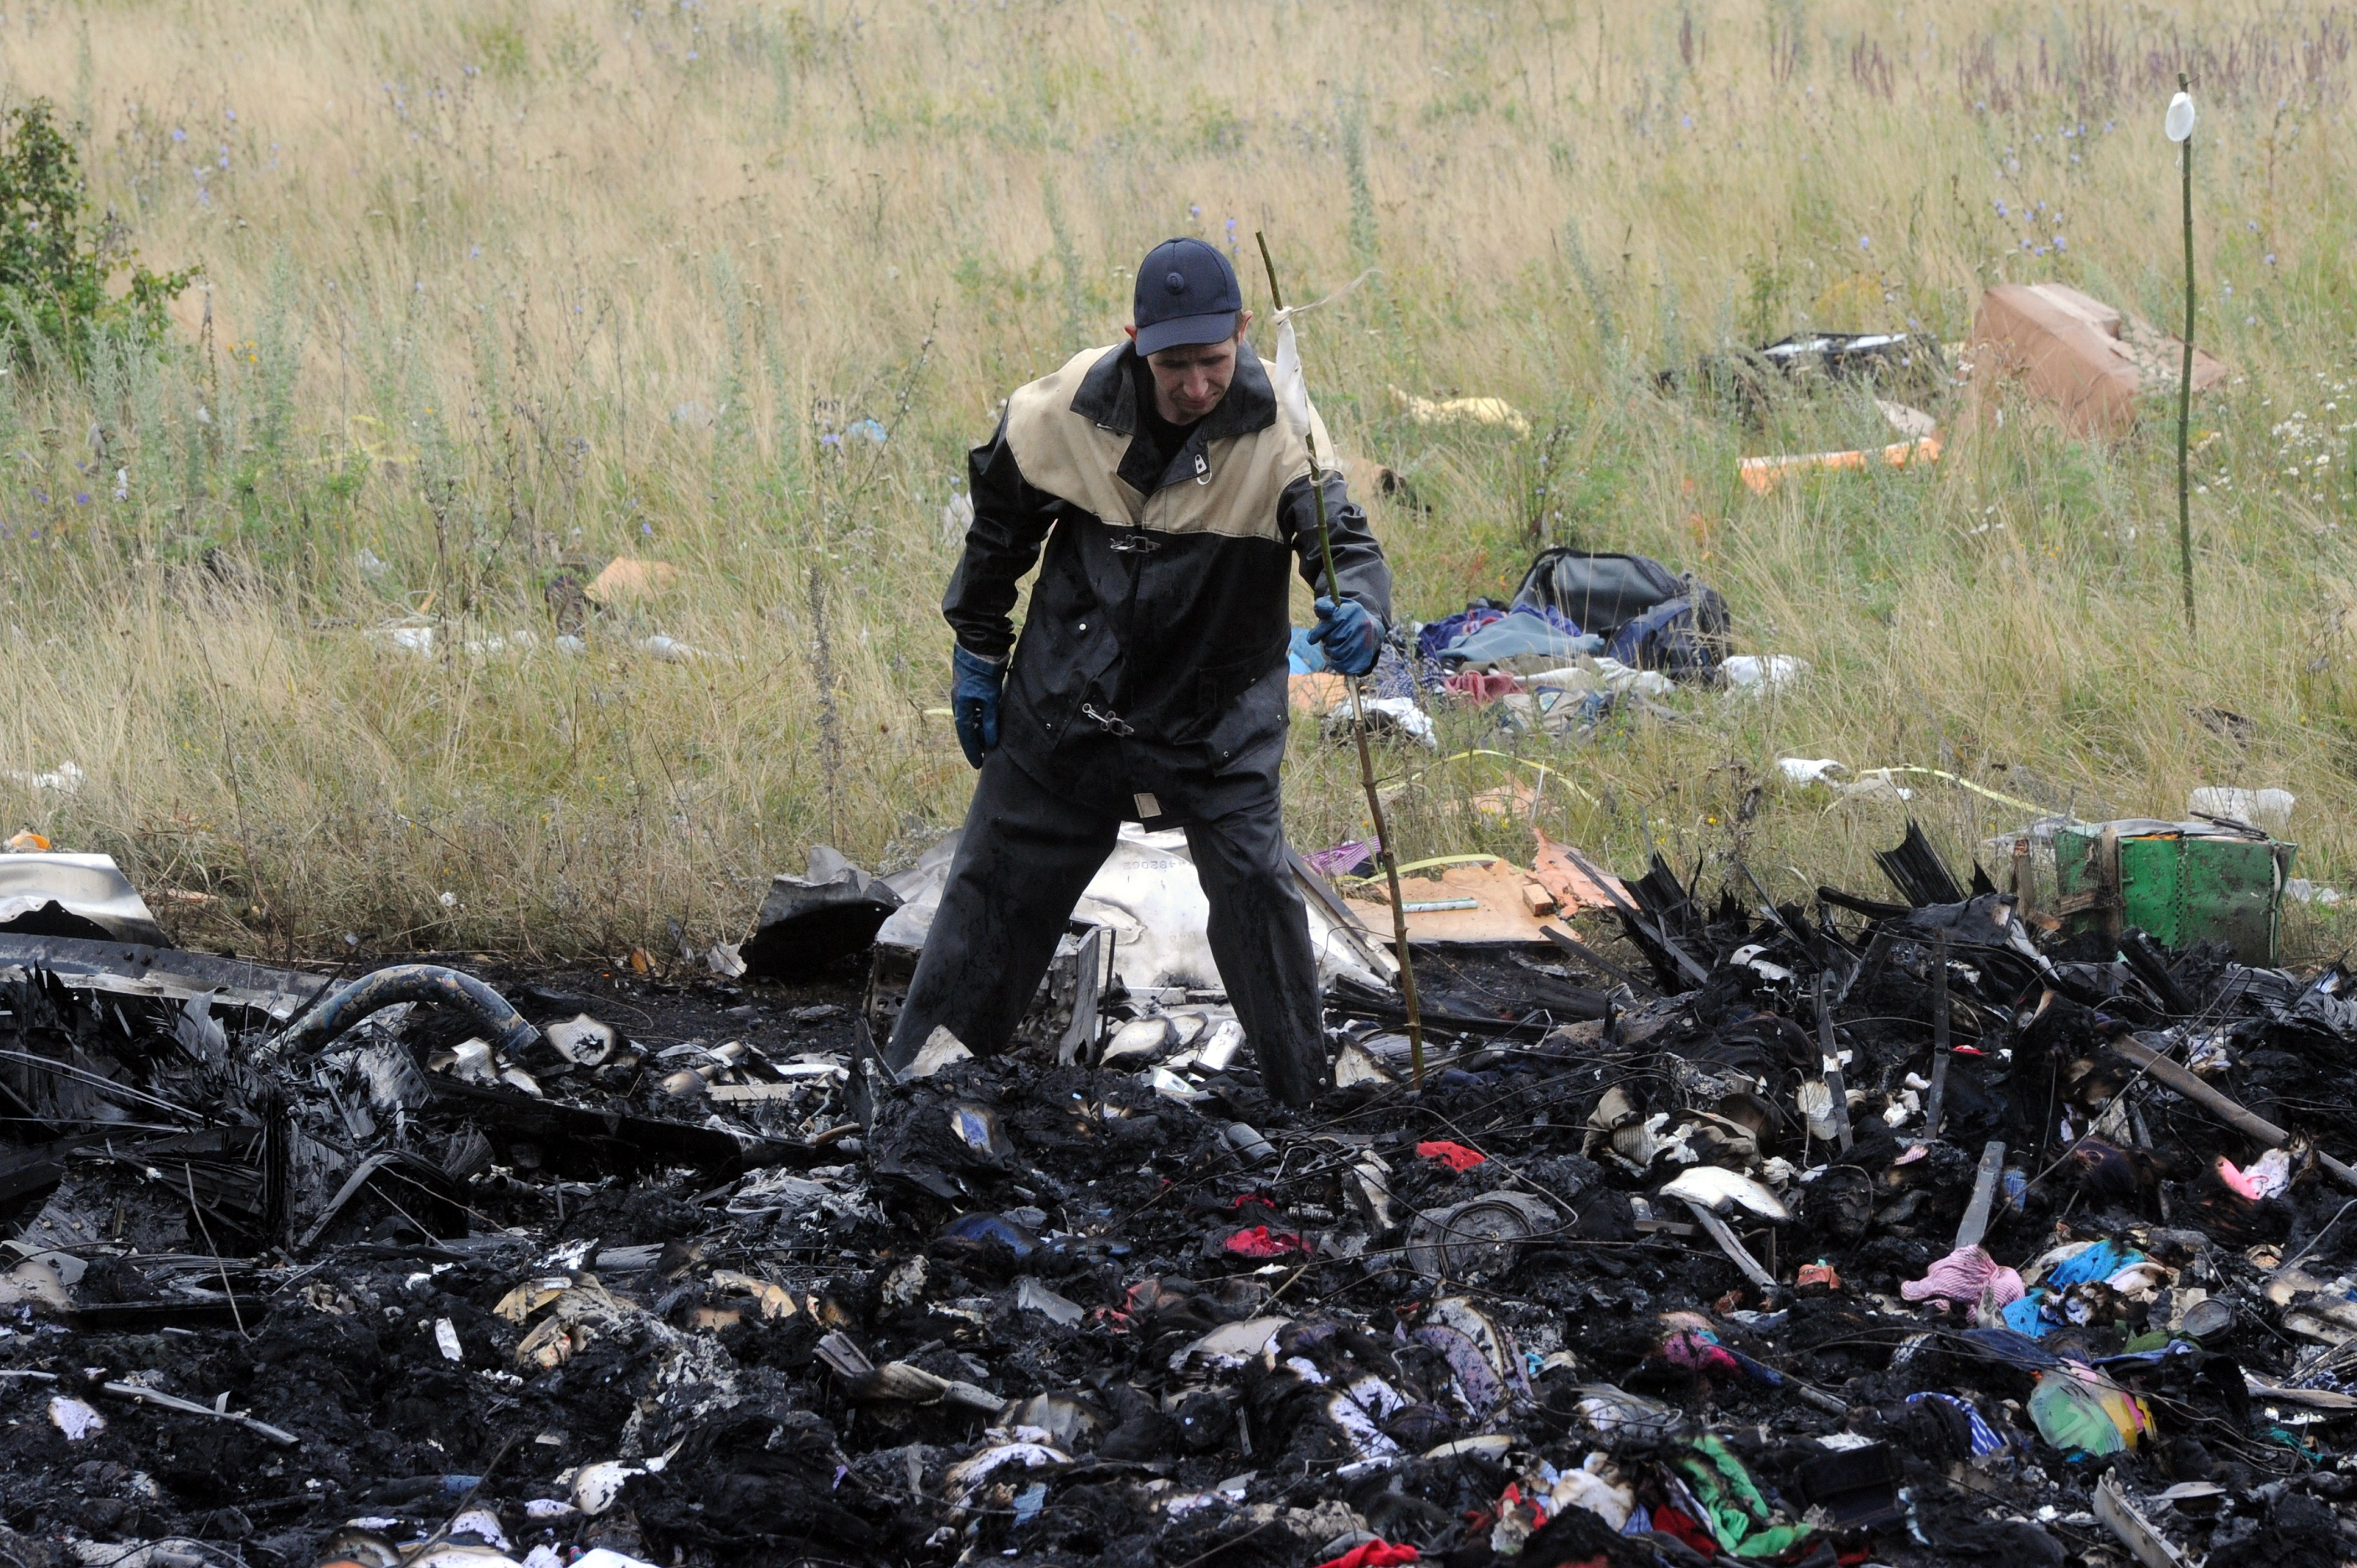 A rescue worker uses sticks to mark the location where bodies of victims have been found at the site of the crash of a Malaysian airliner carrying 298 people from Amsterdam to Kuala Lumpur in Grabove, in rebel-held east Ukraine, on July 18, 2014.